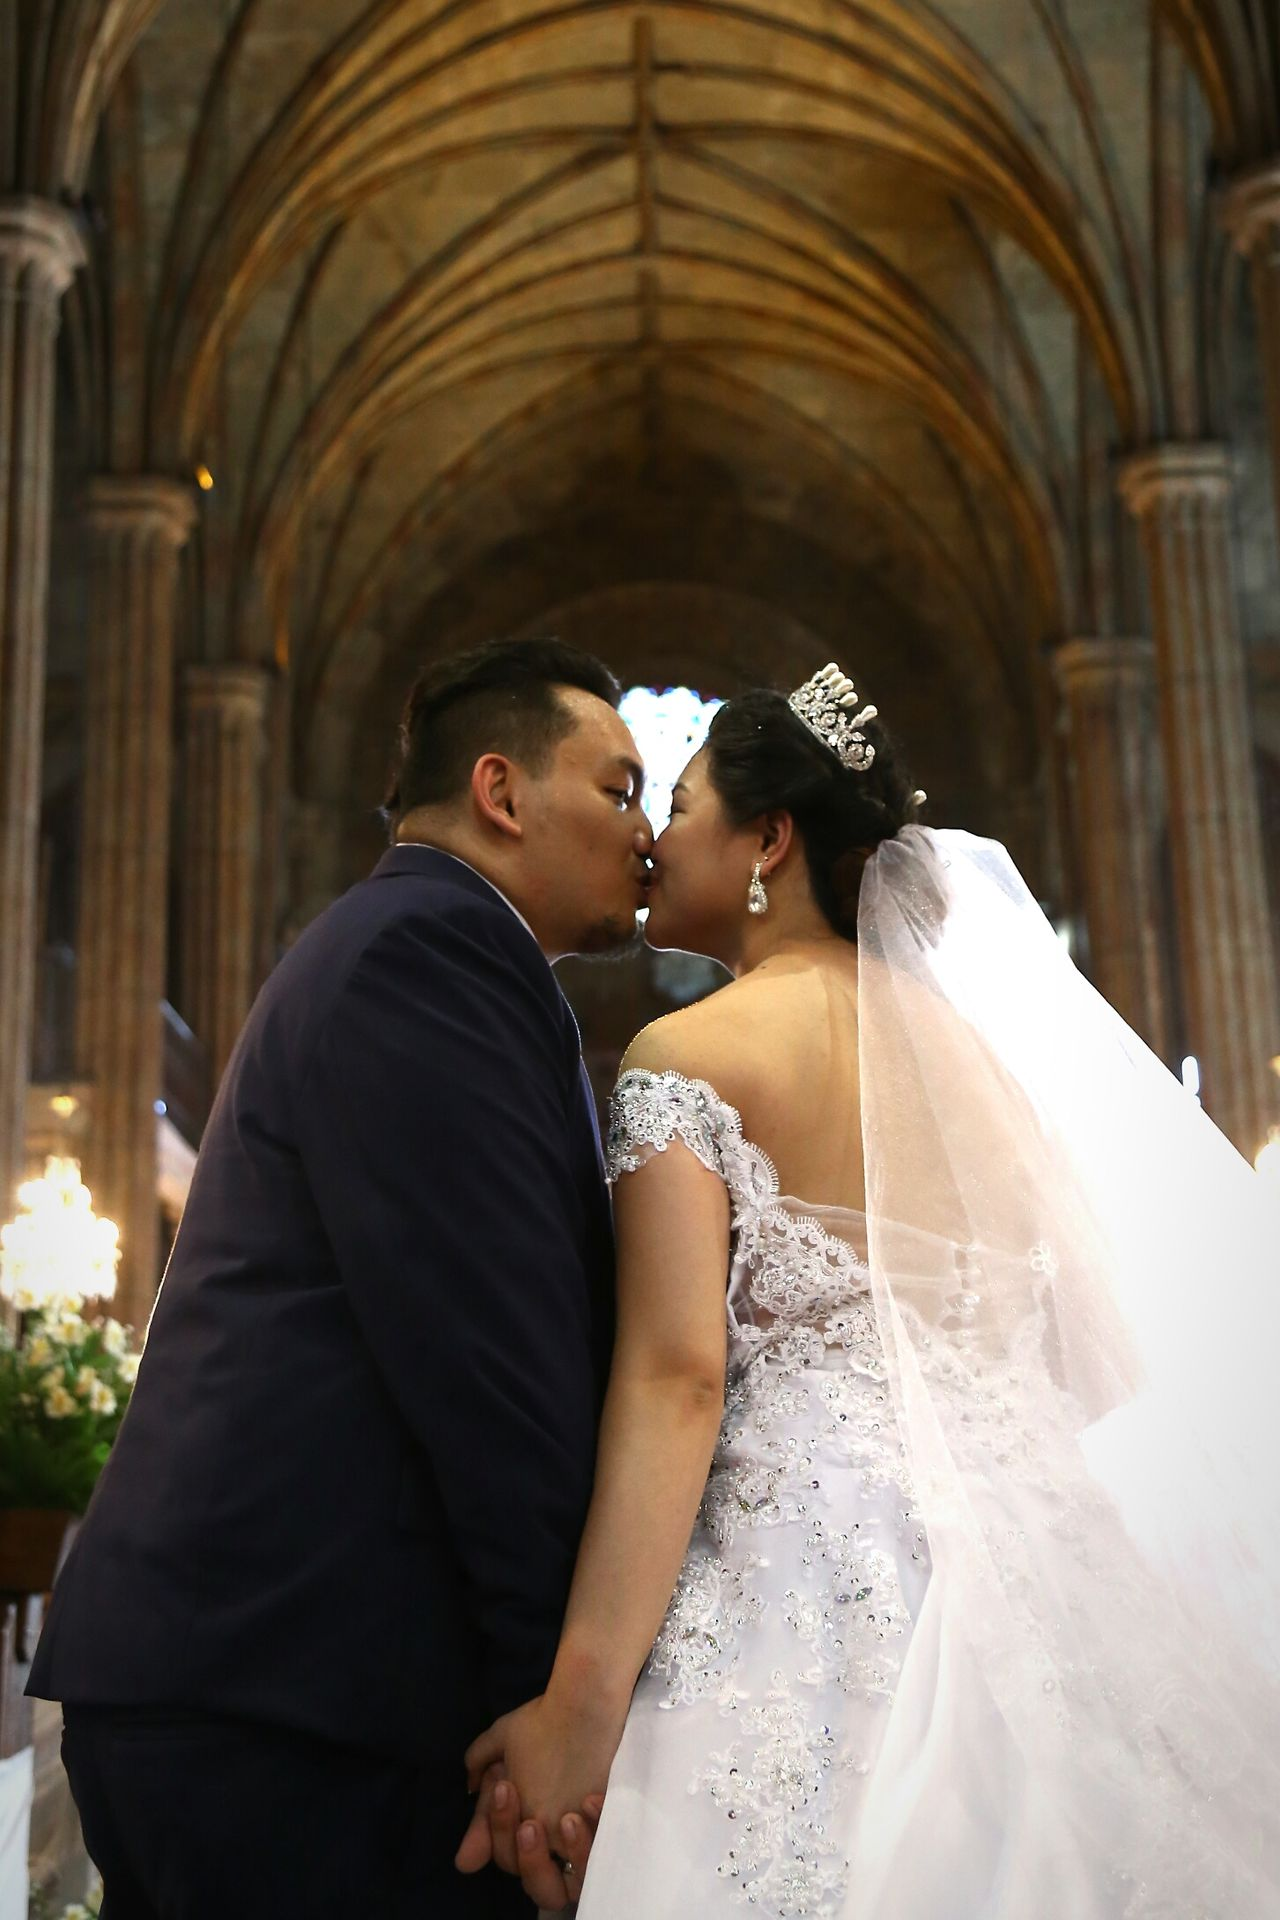 Wedding Photography Love ♥ Justmarried💑 Bride Groom Kiss Church